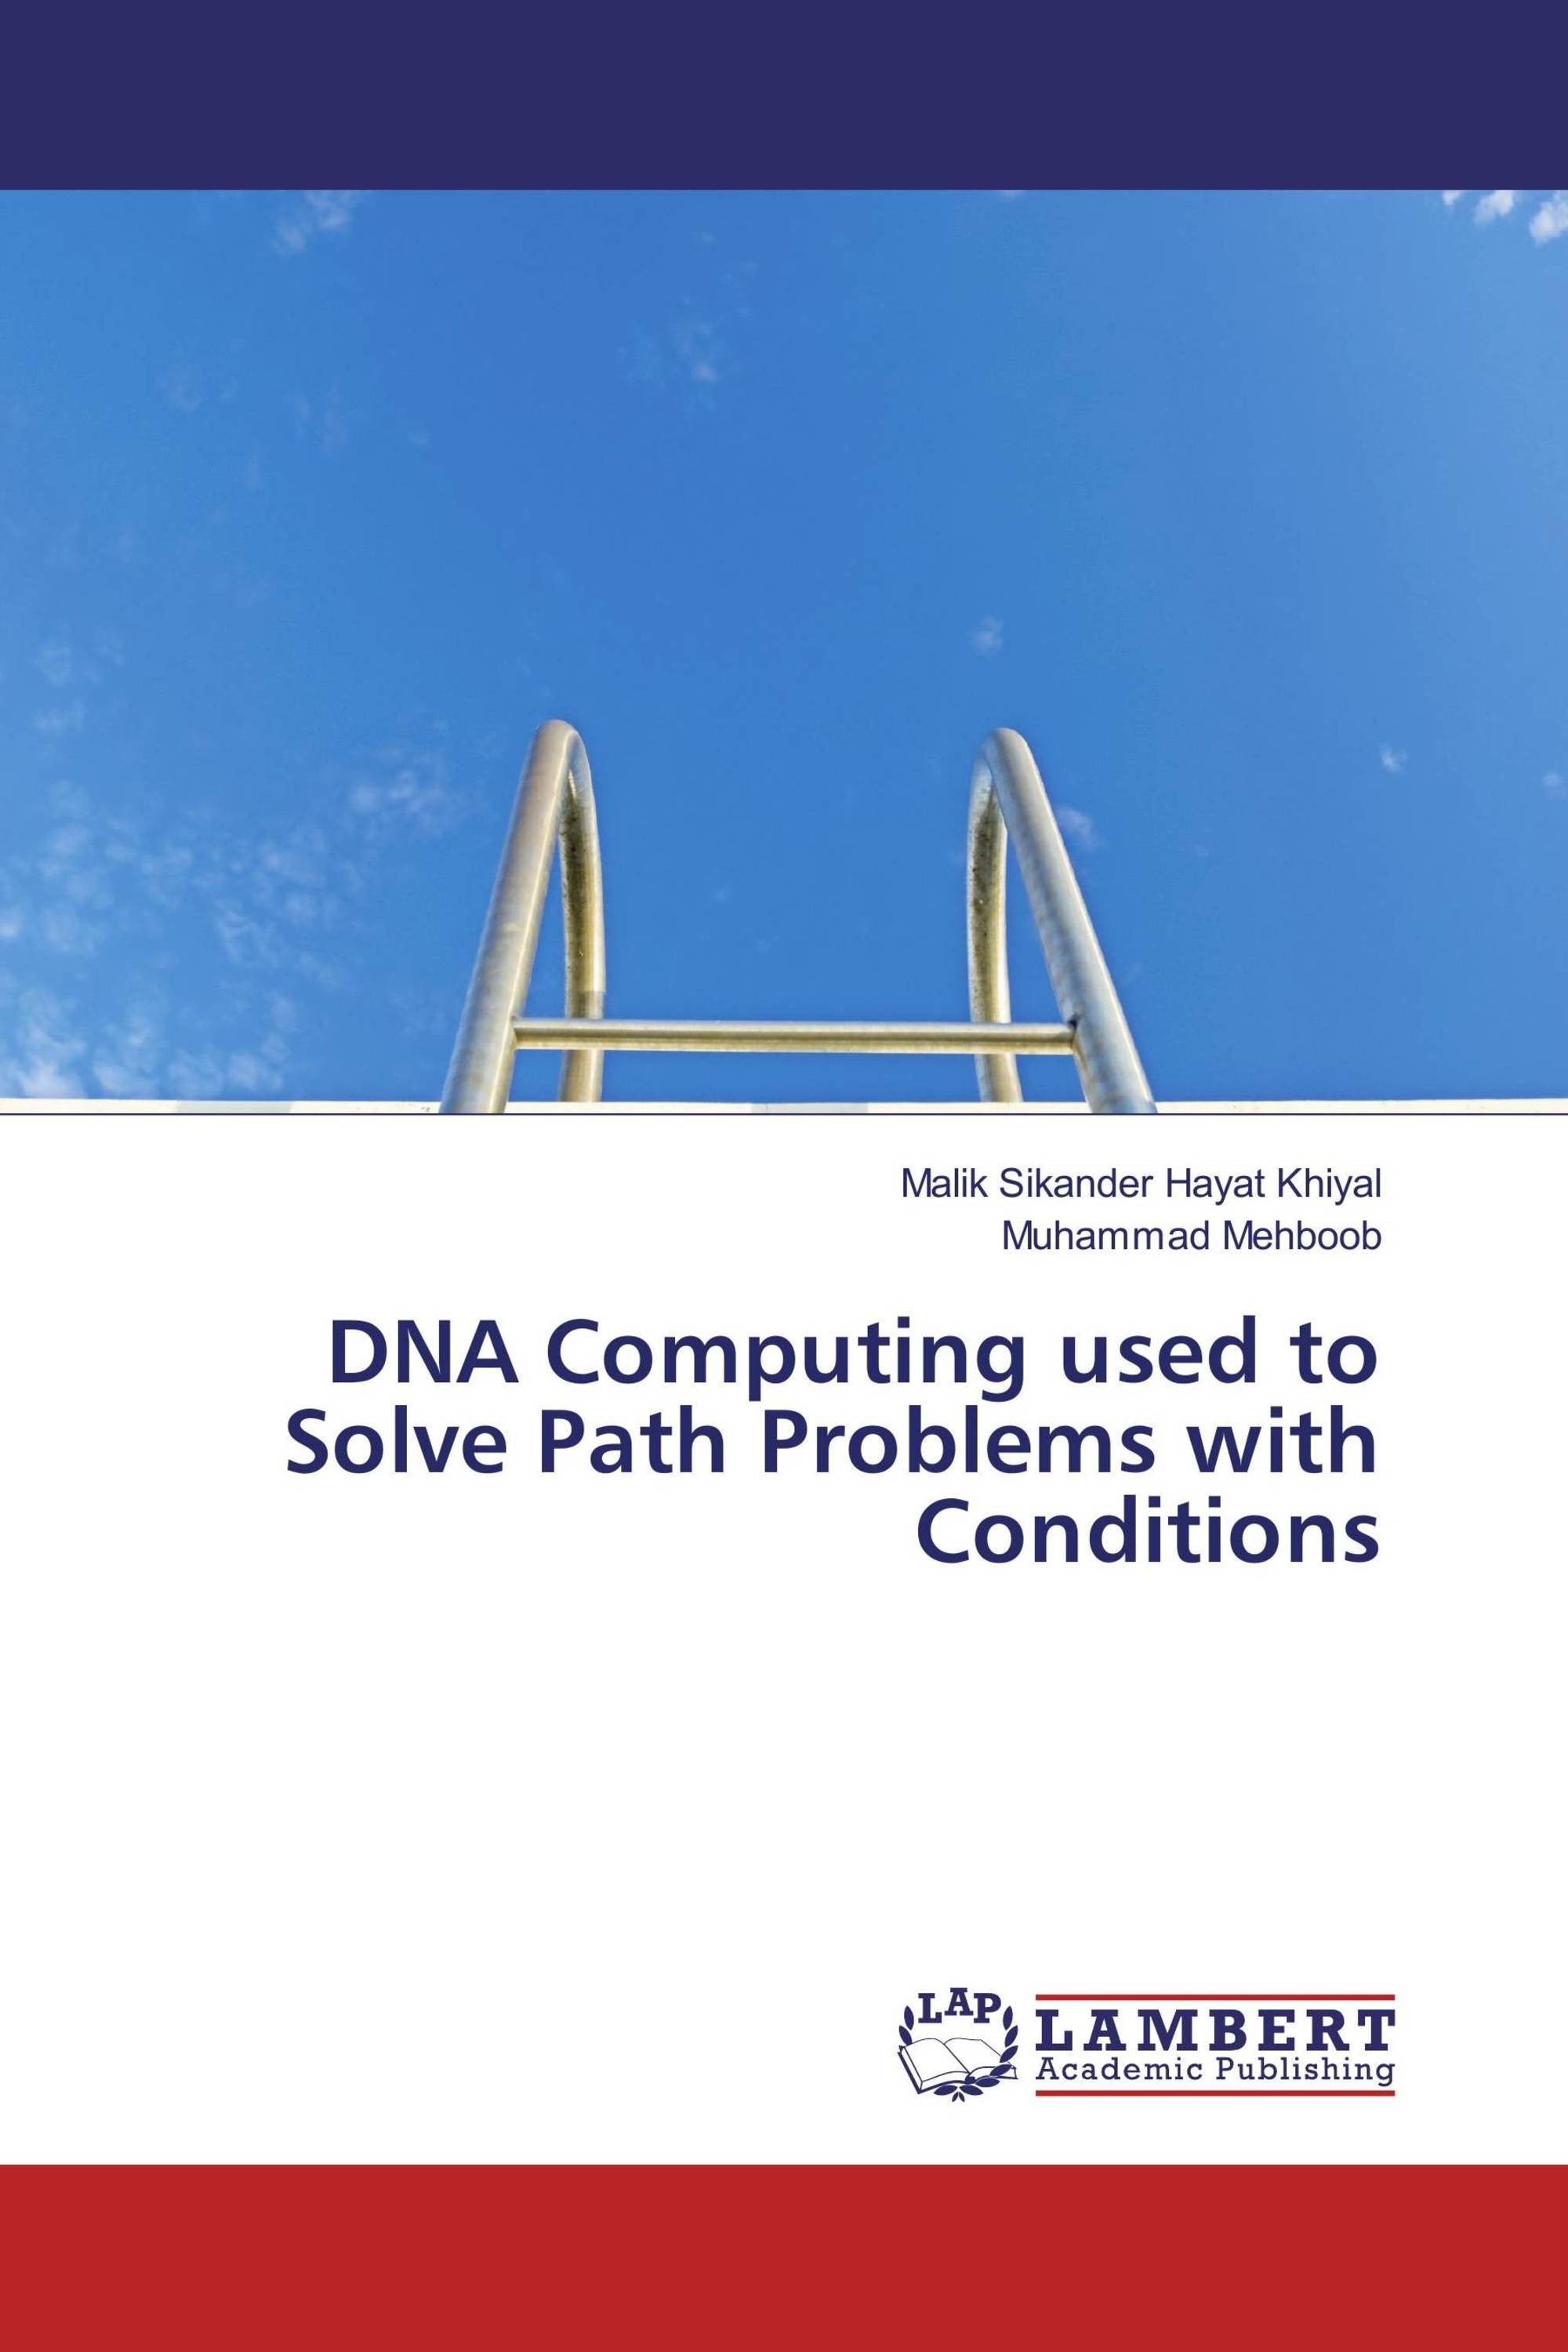 Dna Computing Research Paper - Buying research papers online